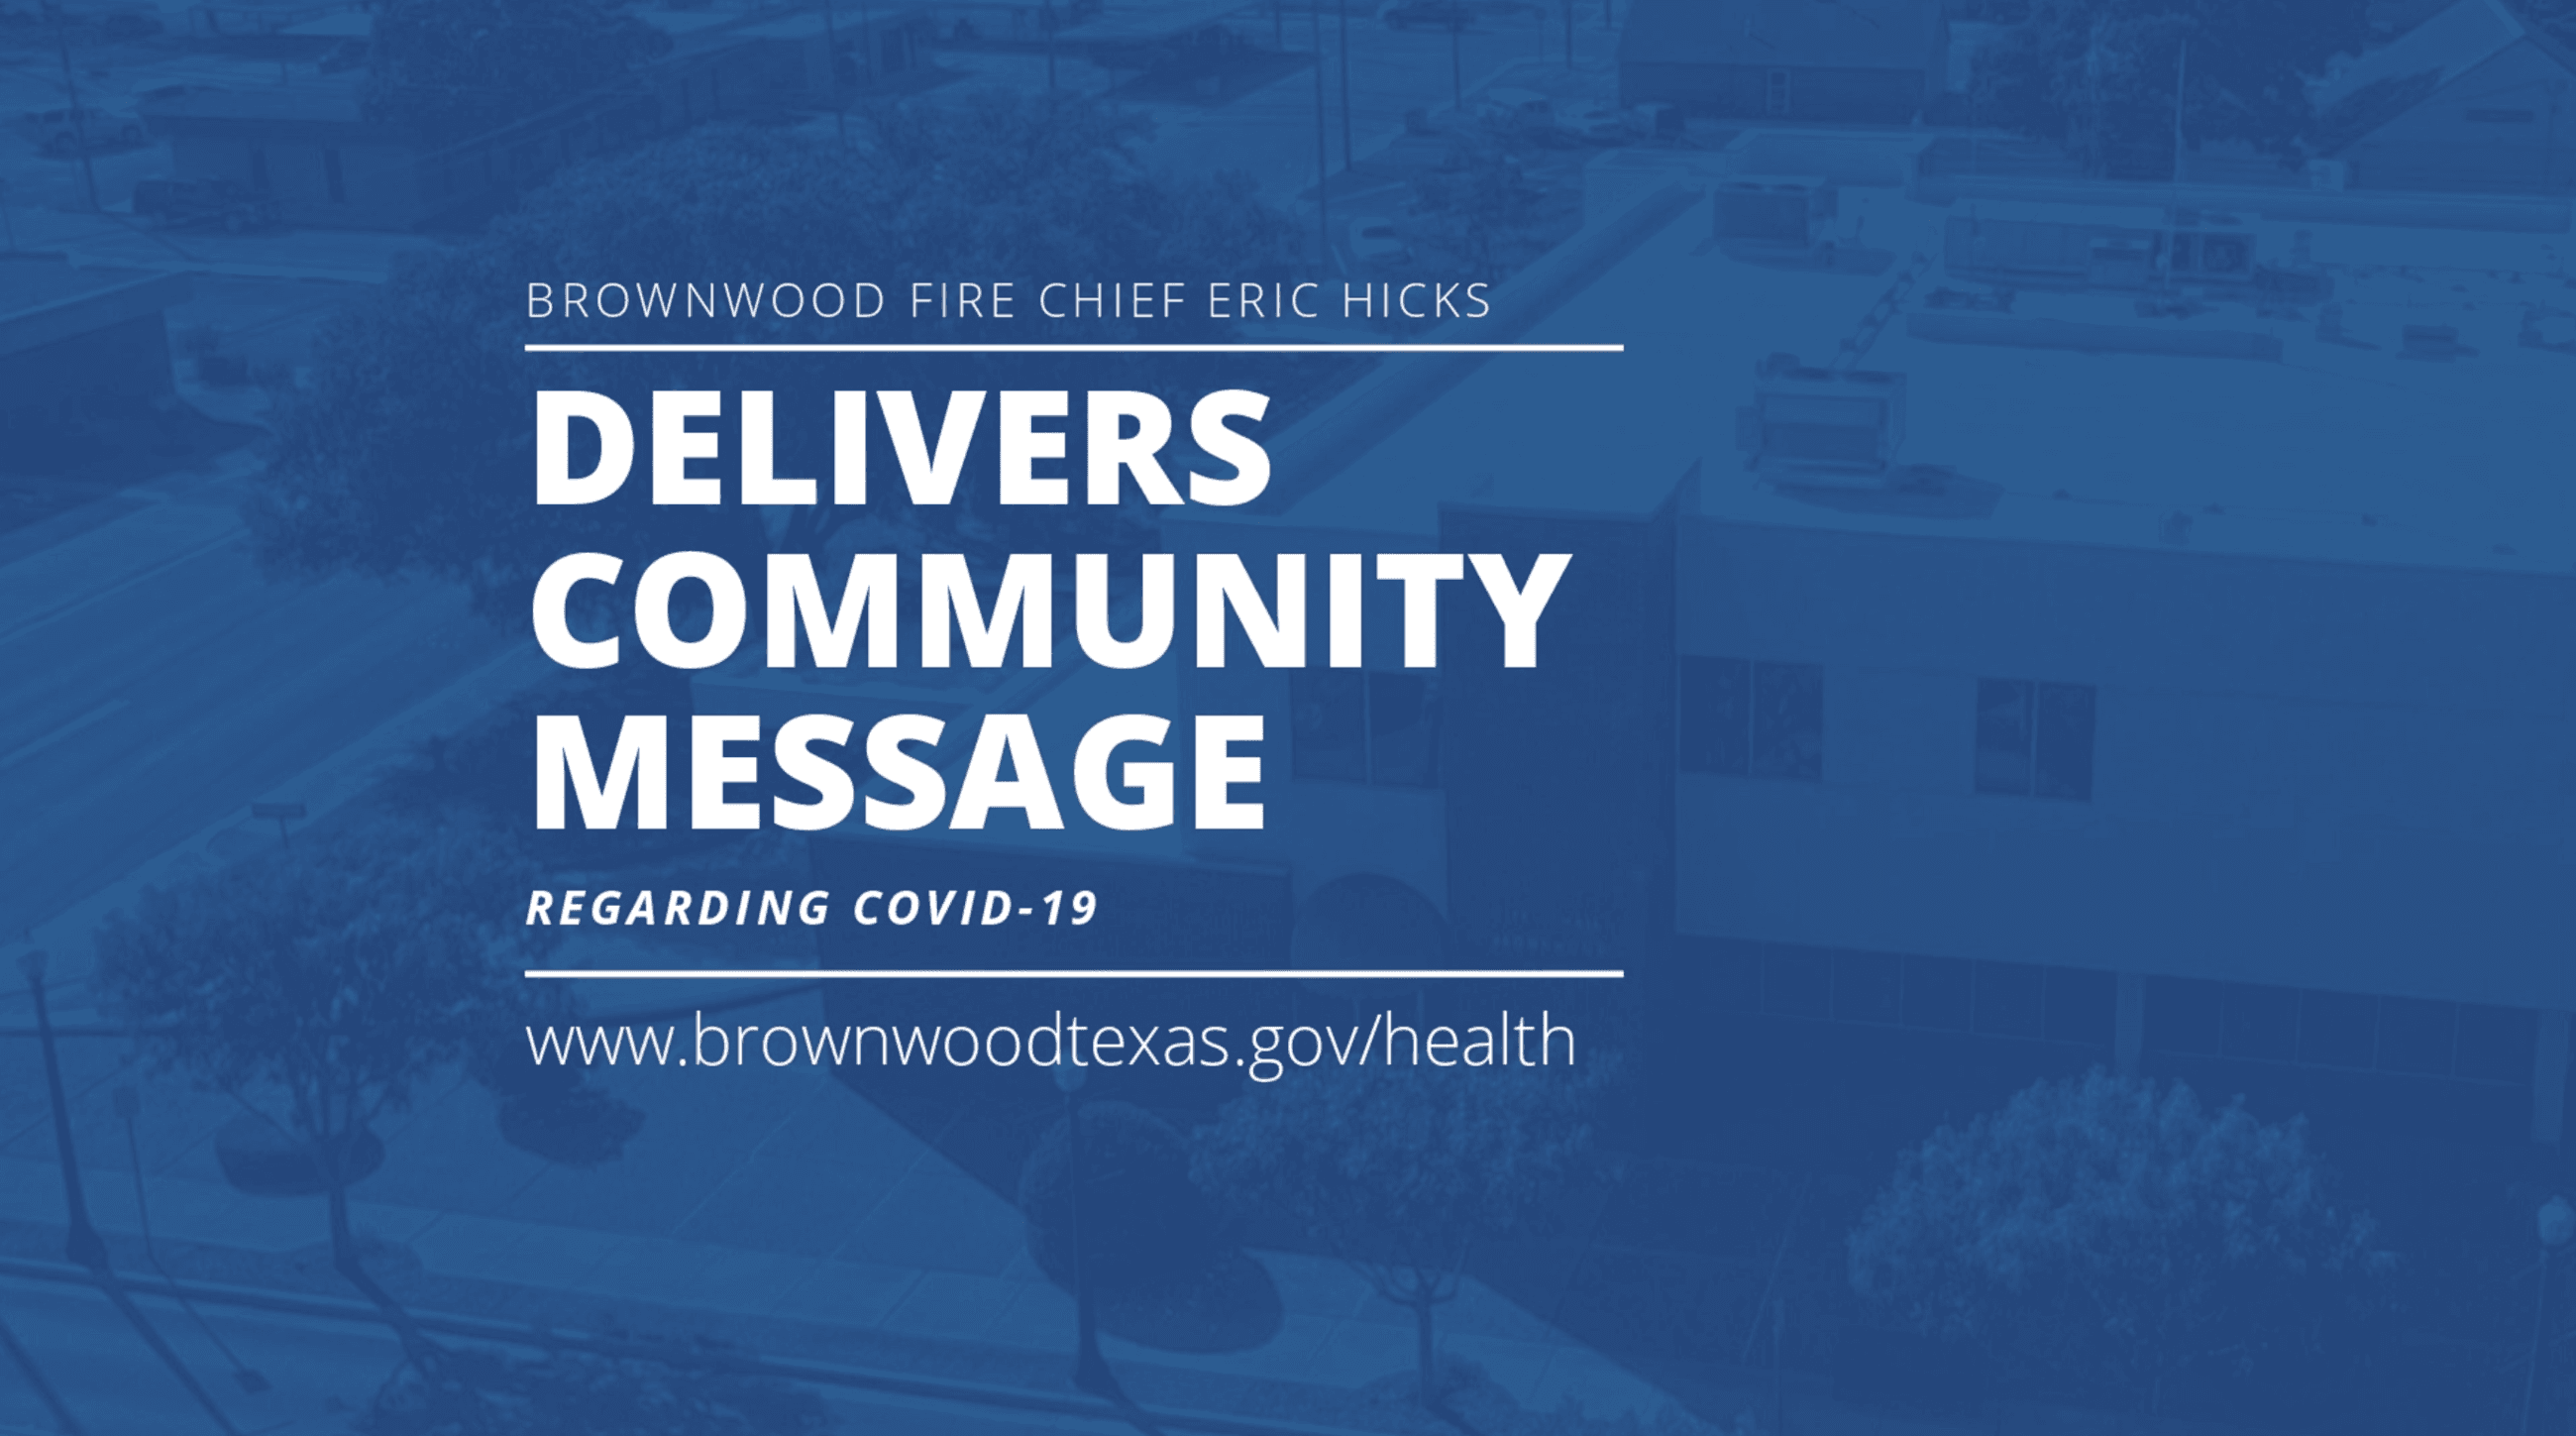 Fire Chief - Community message